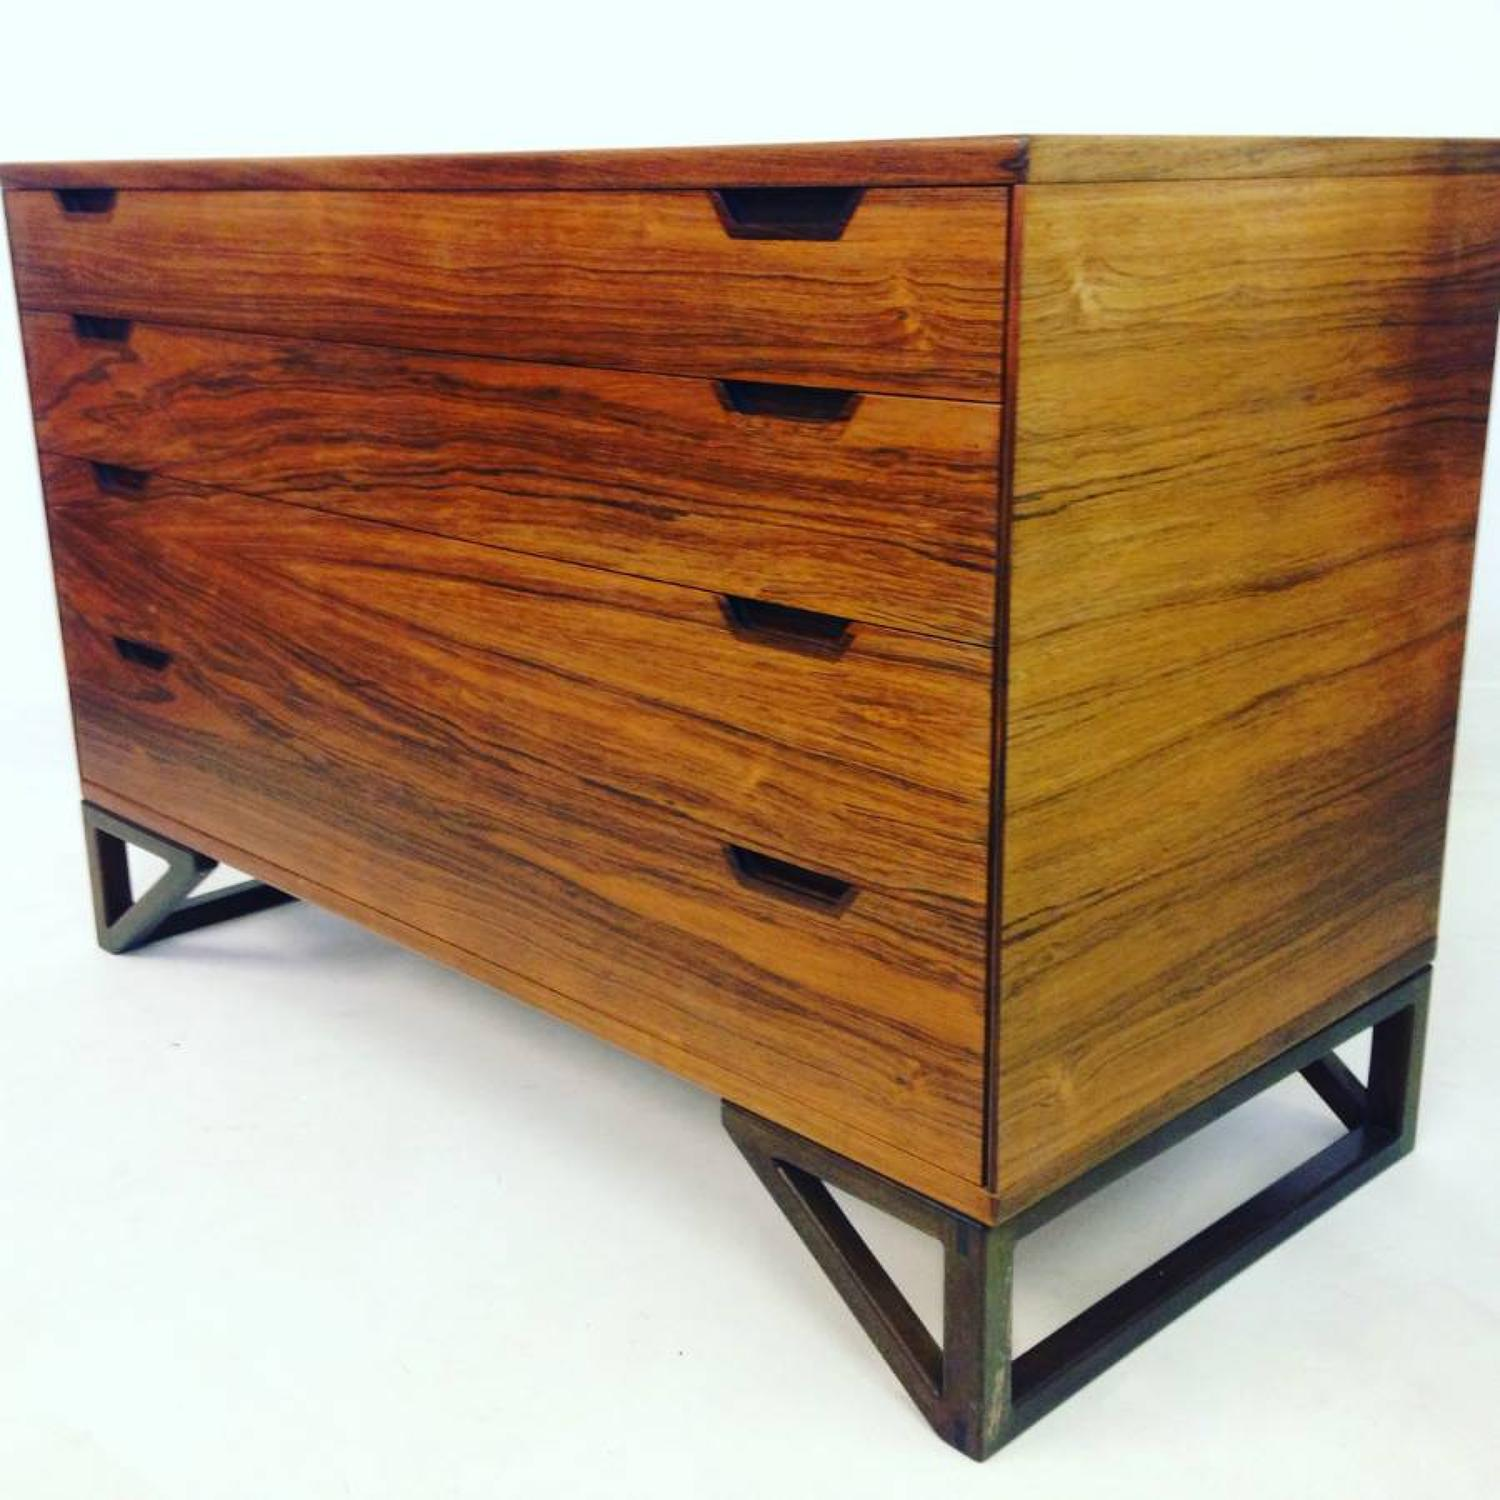 Rosewood chest of drawers by Svend Langkilde